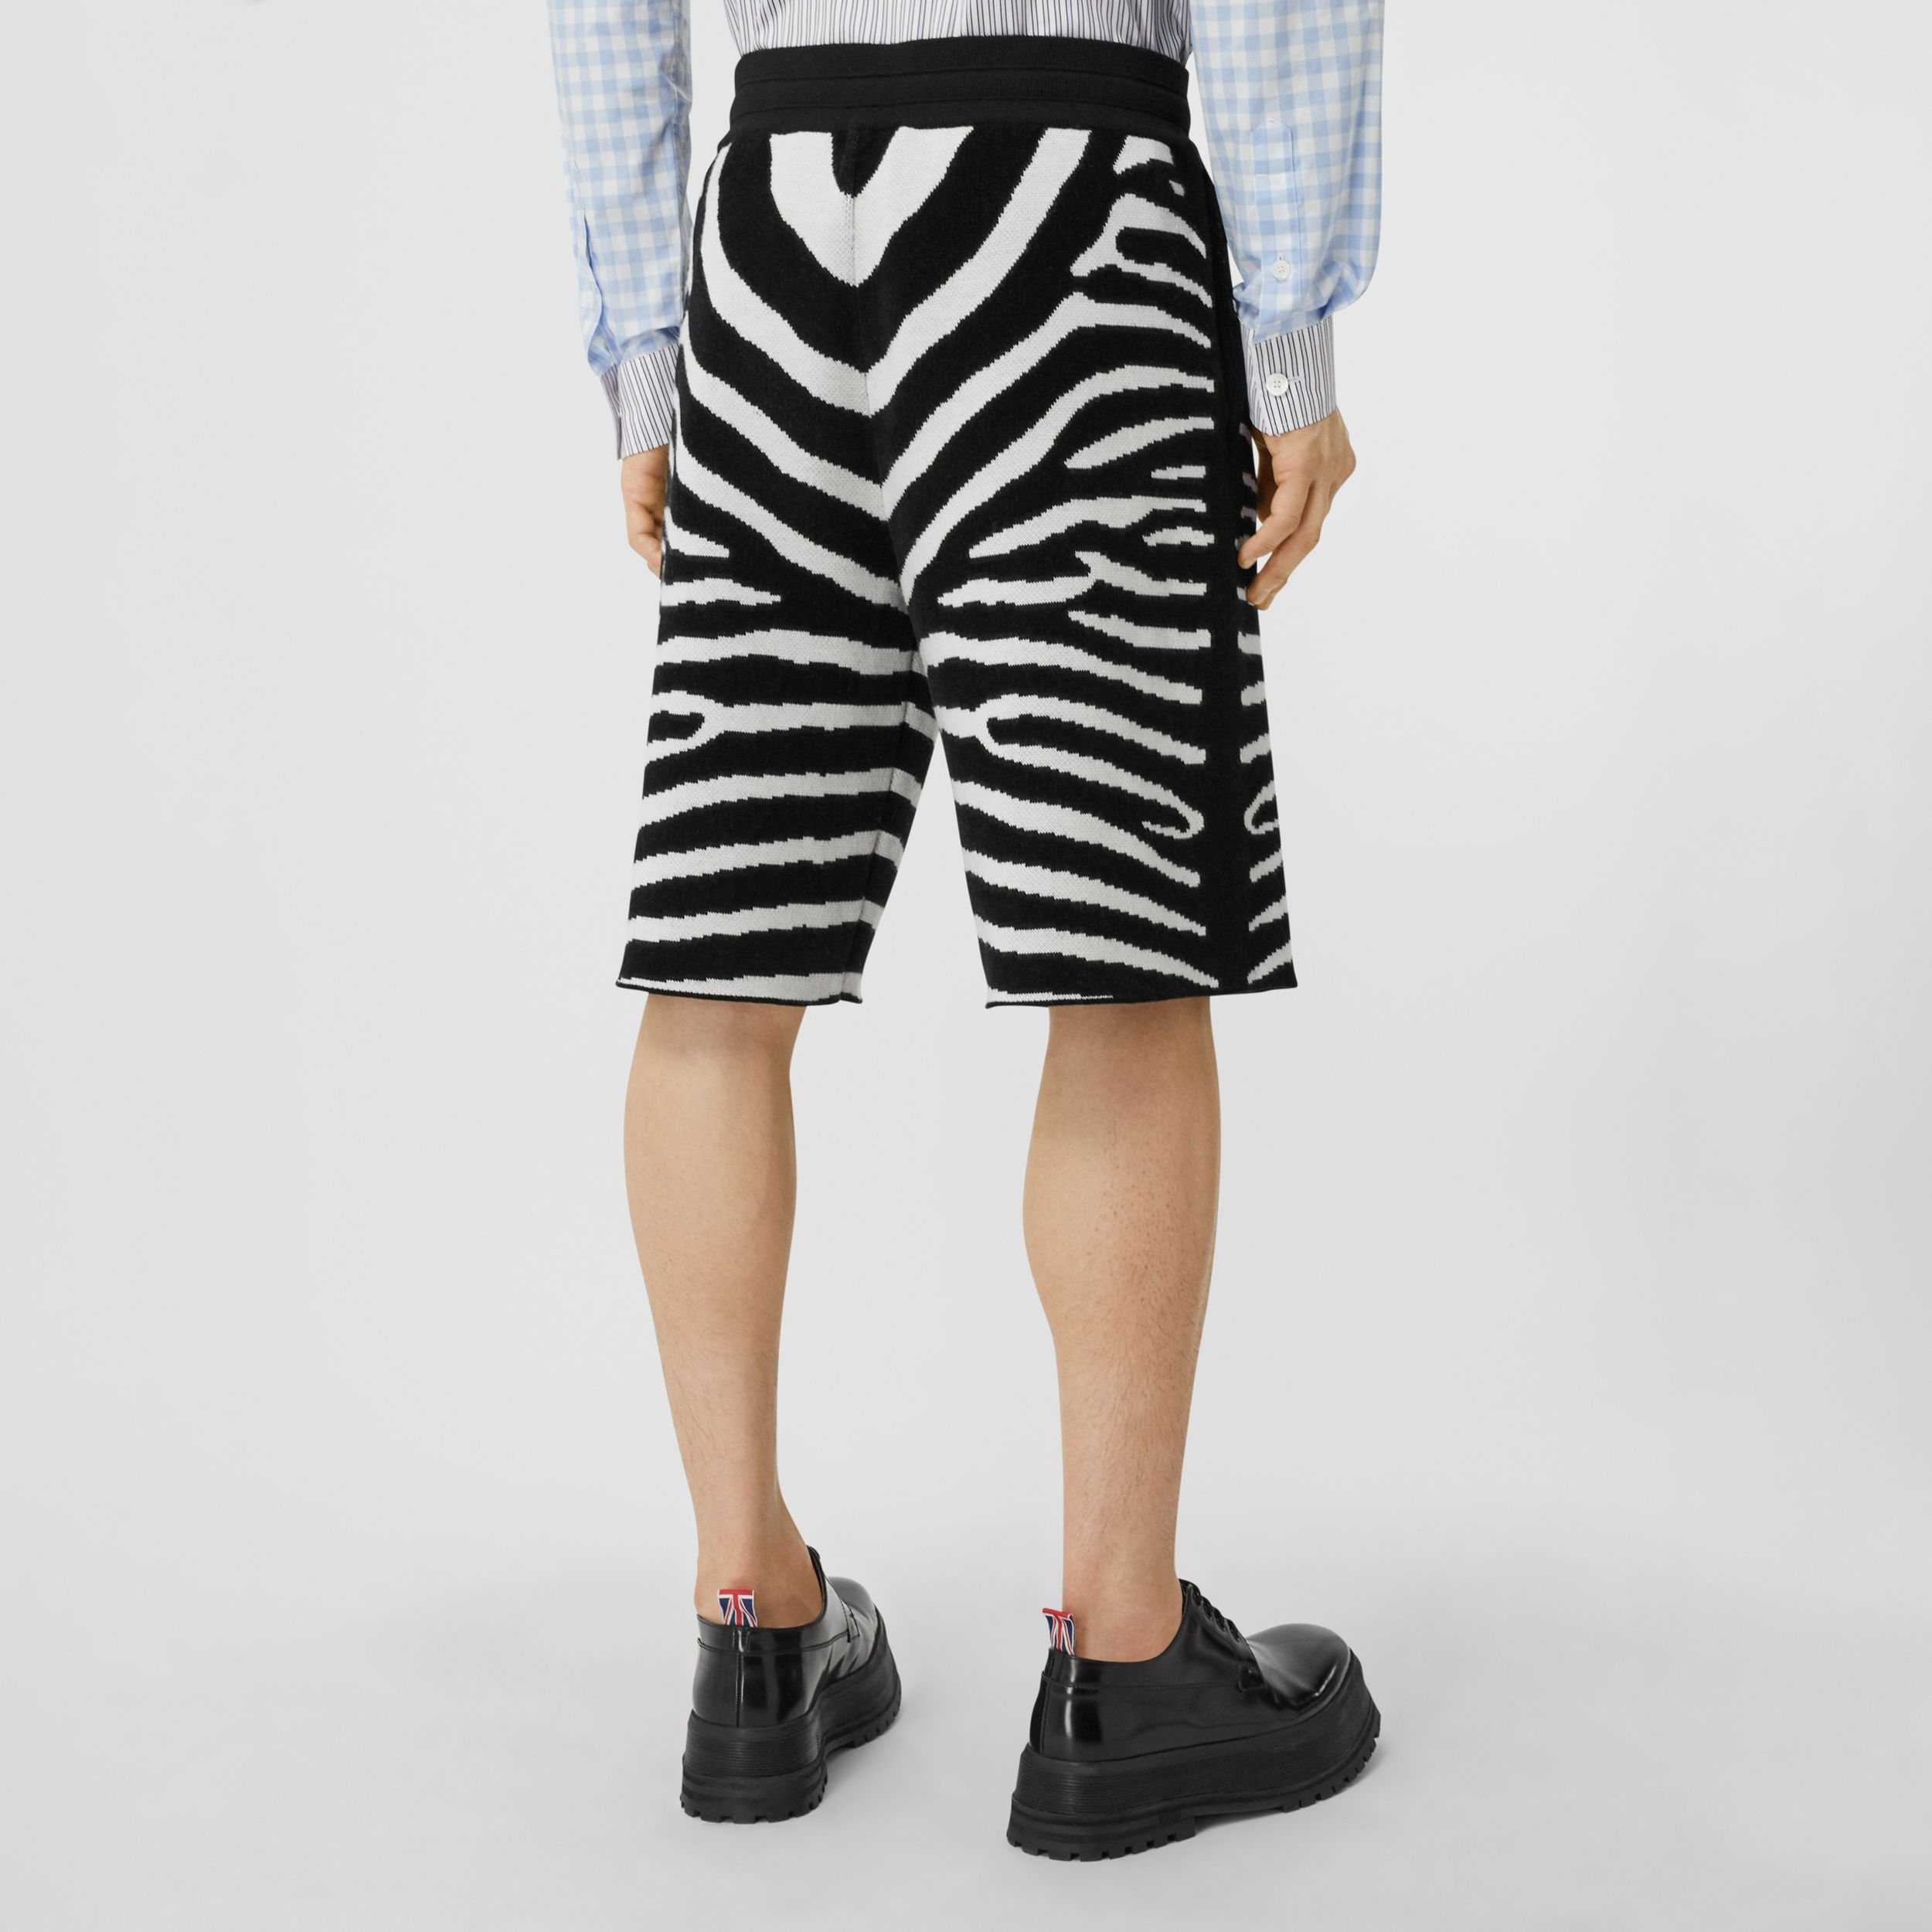 Zebra Wool Blend Jacquard Drawcord Shorts in Black - Men | Burberry - 3